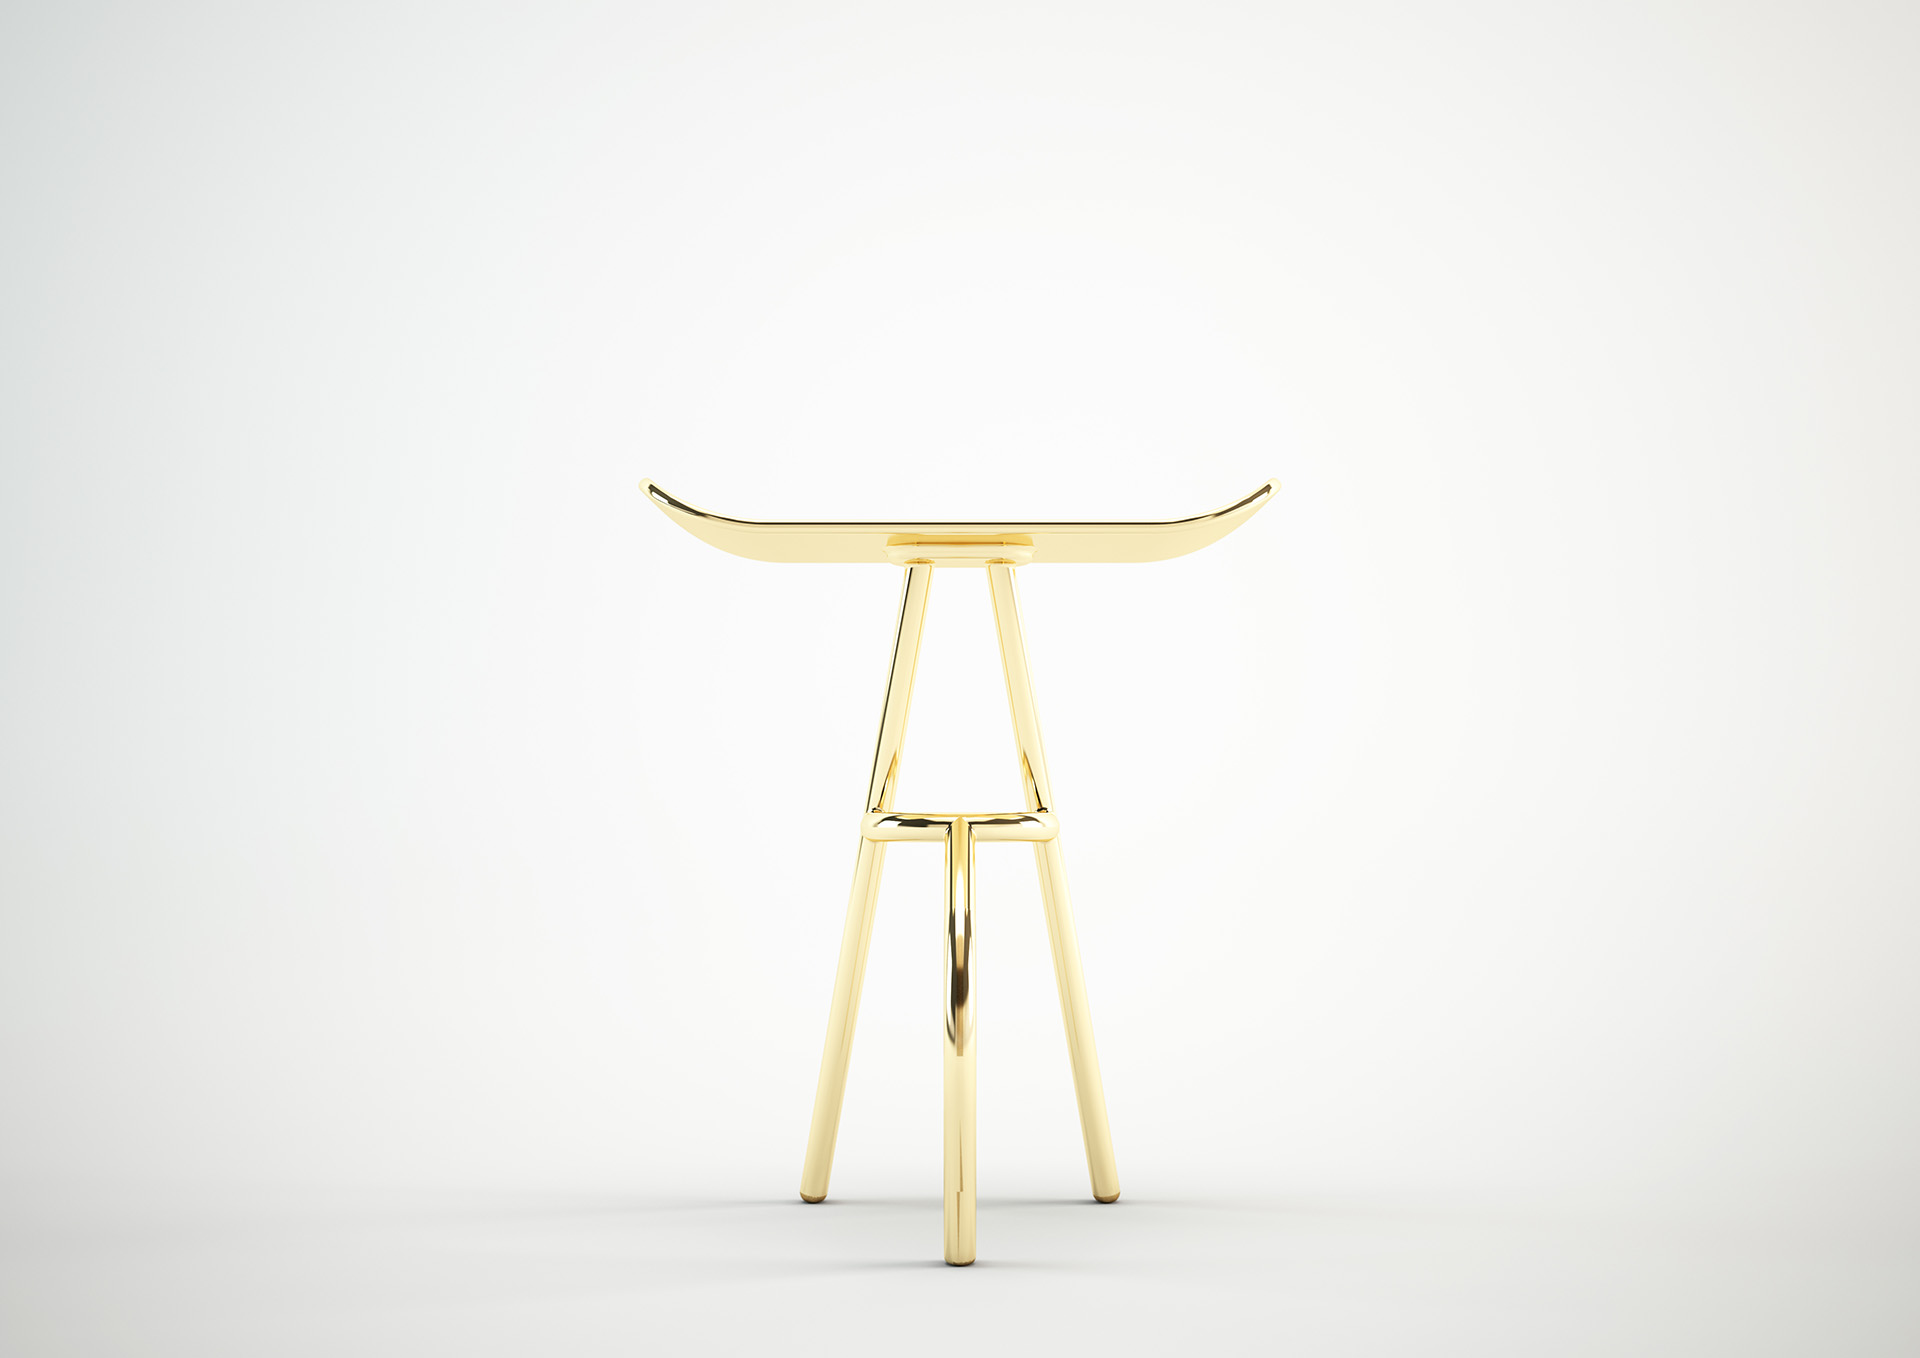 THE STOOL 3